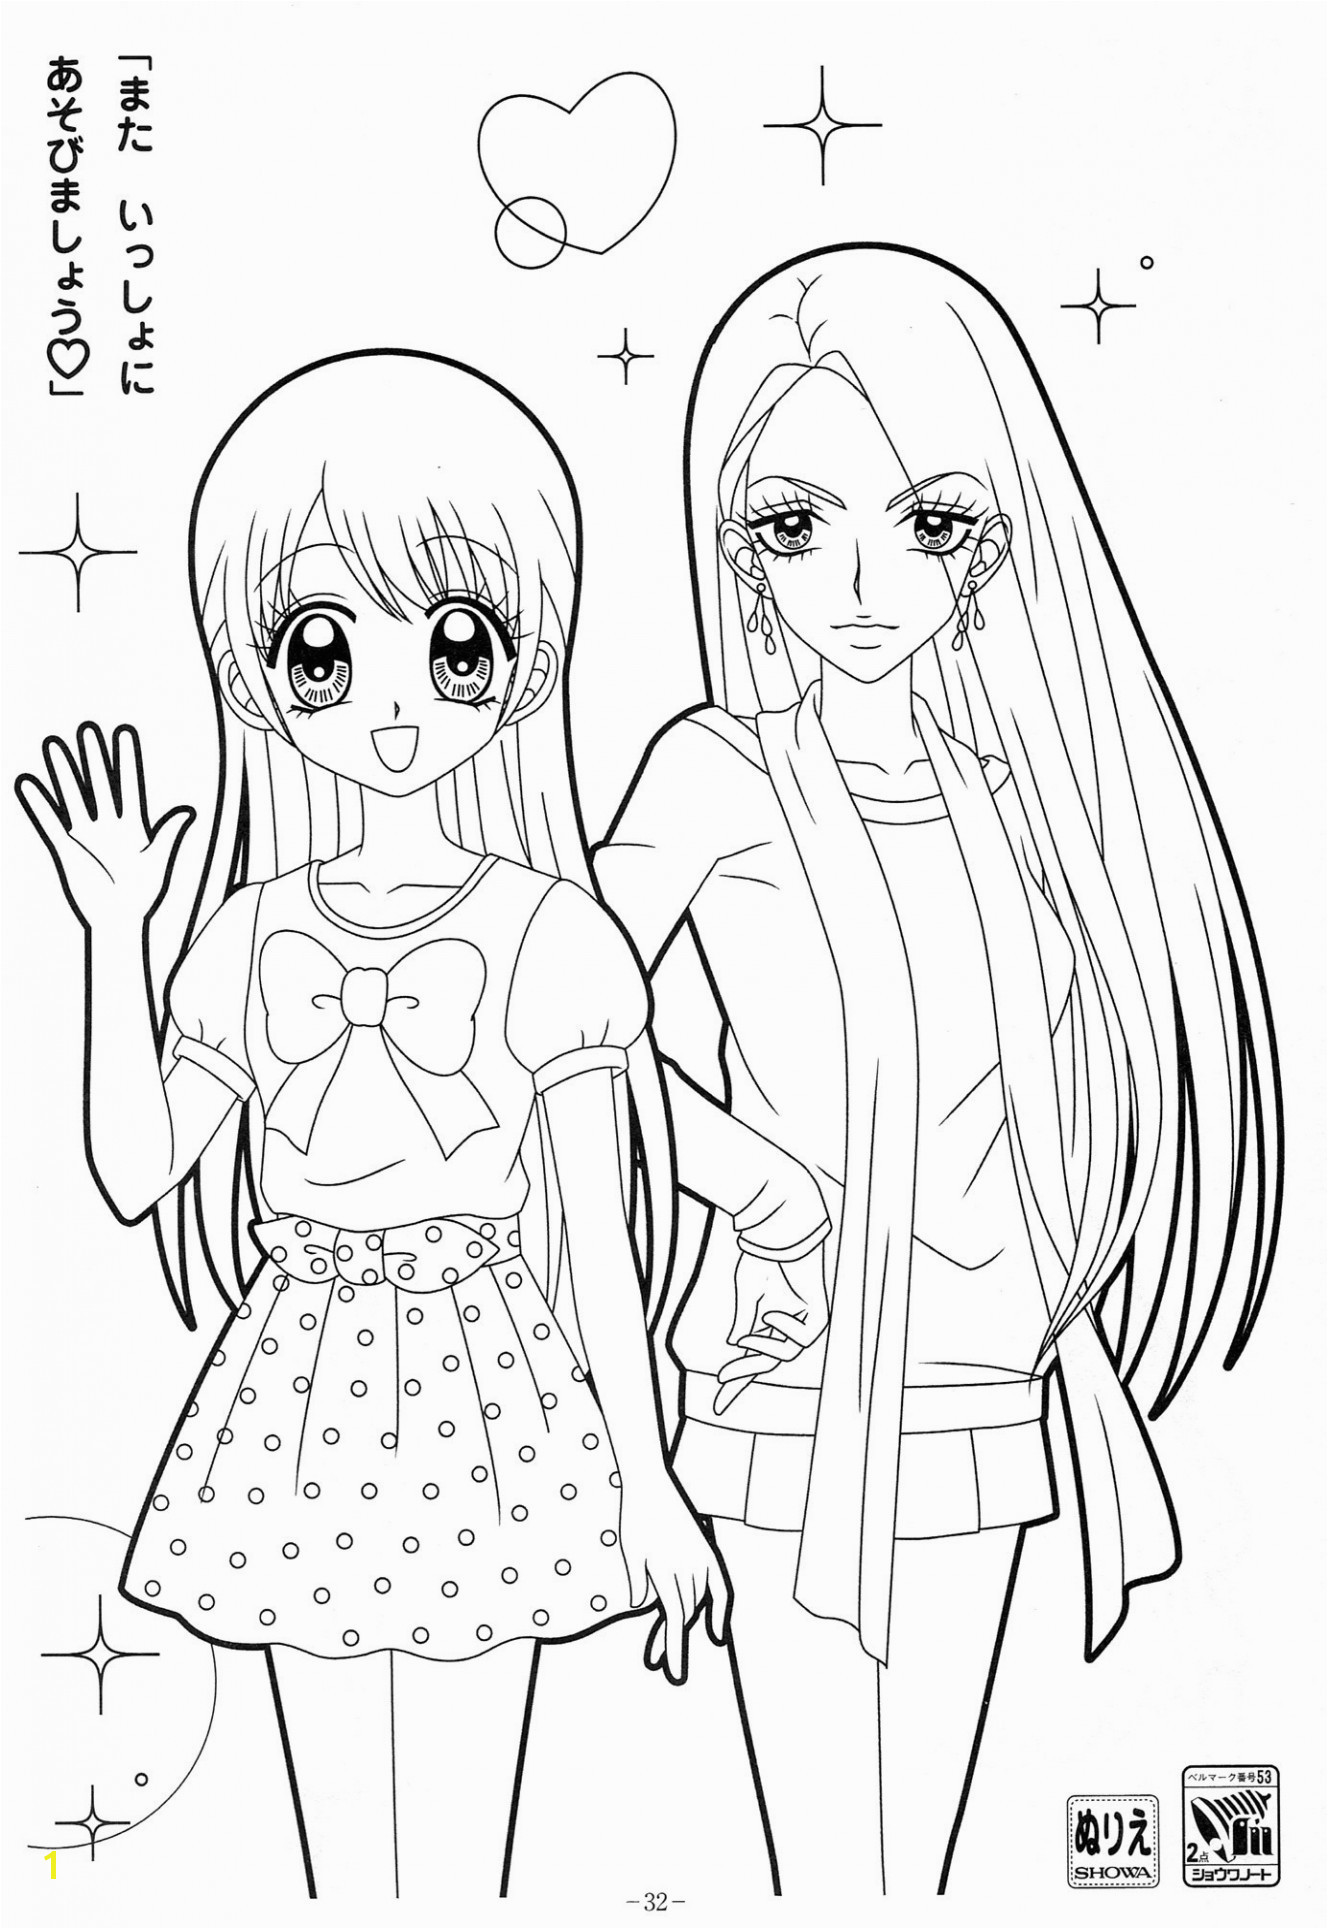 The Munsters Coloring Pages Manga Coloring Pages the Munsters Coloring Pages Coloring Pages